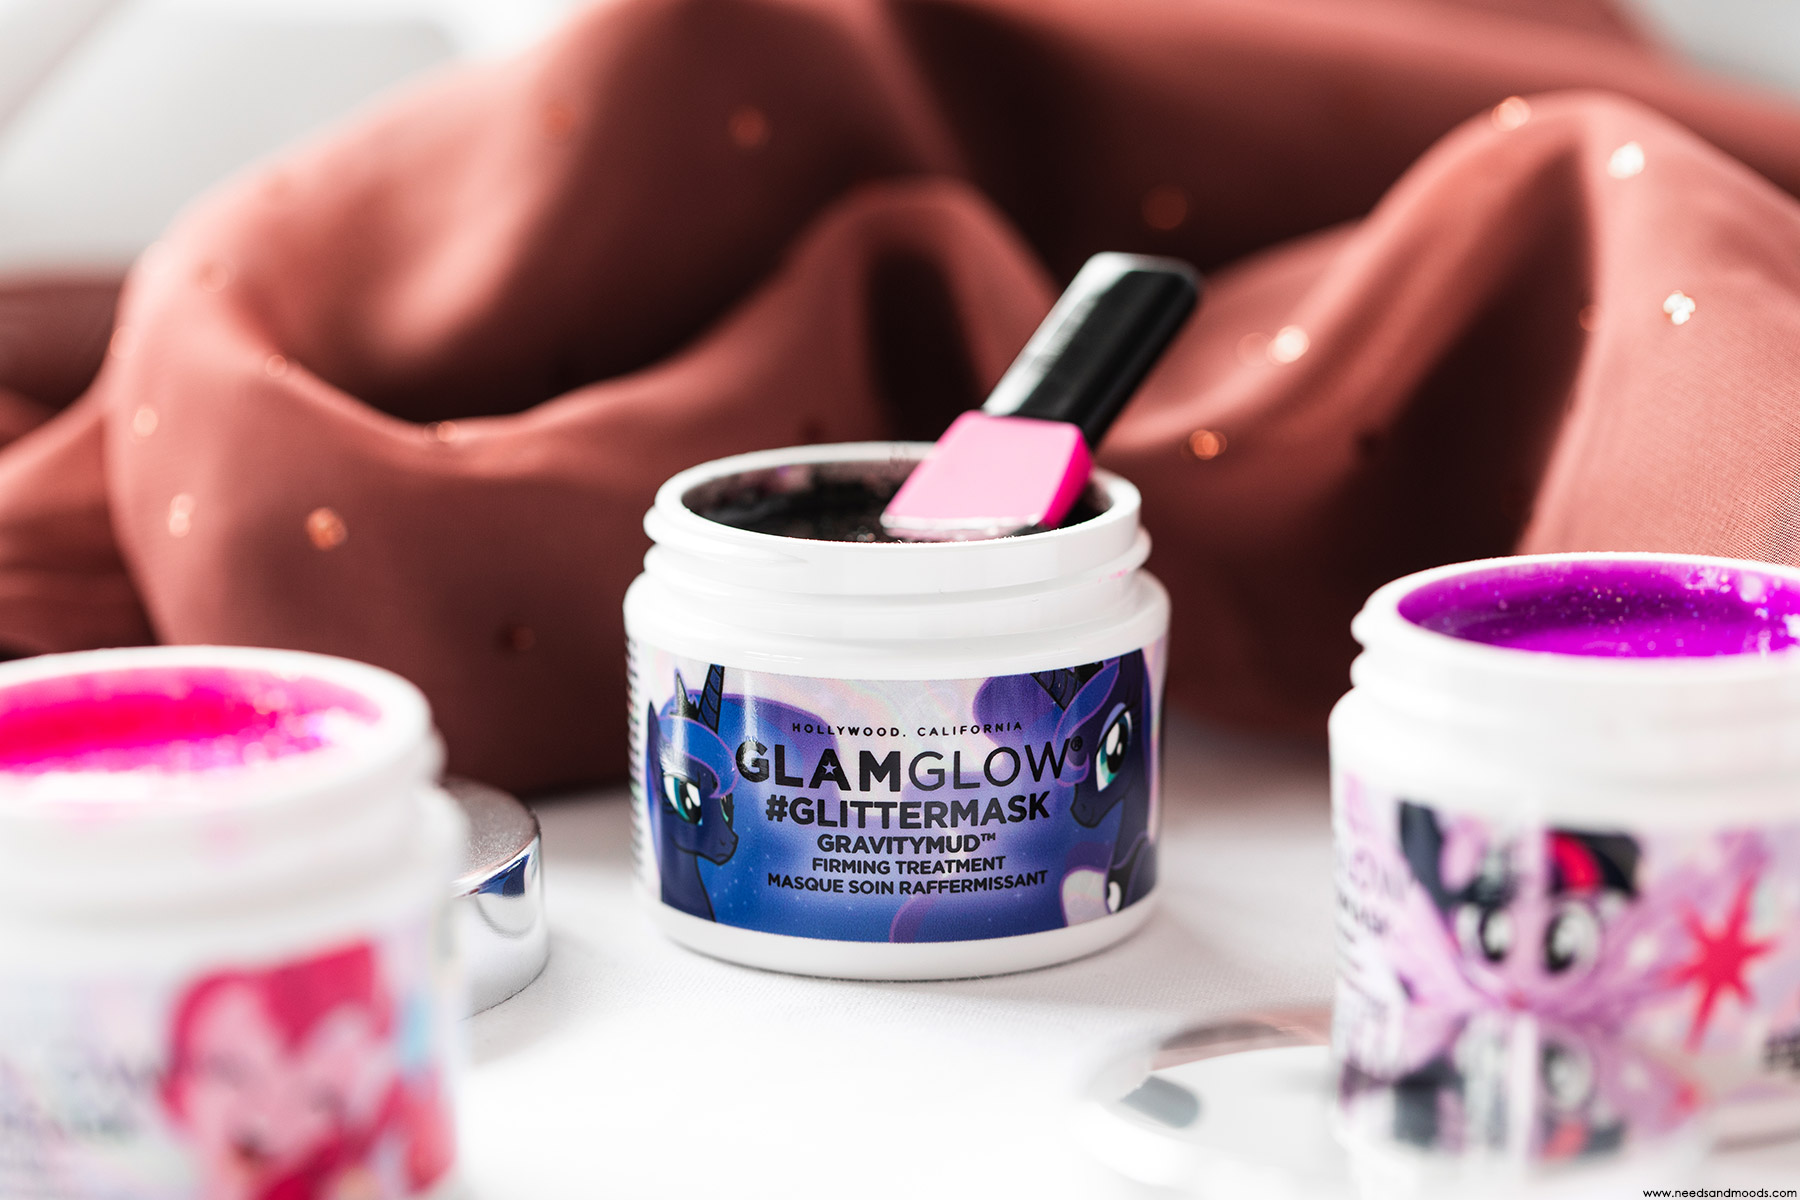 glamglow glittermask gravitymud my little pony